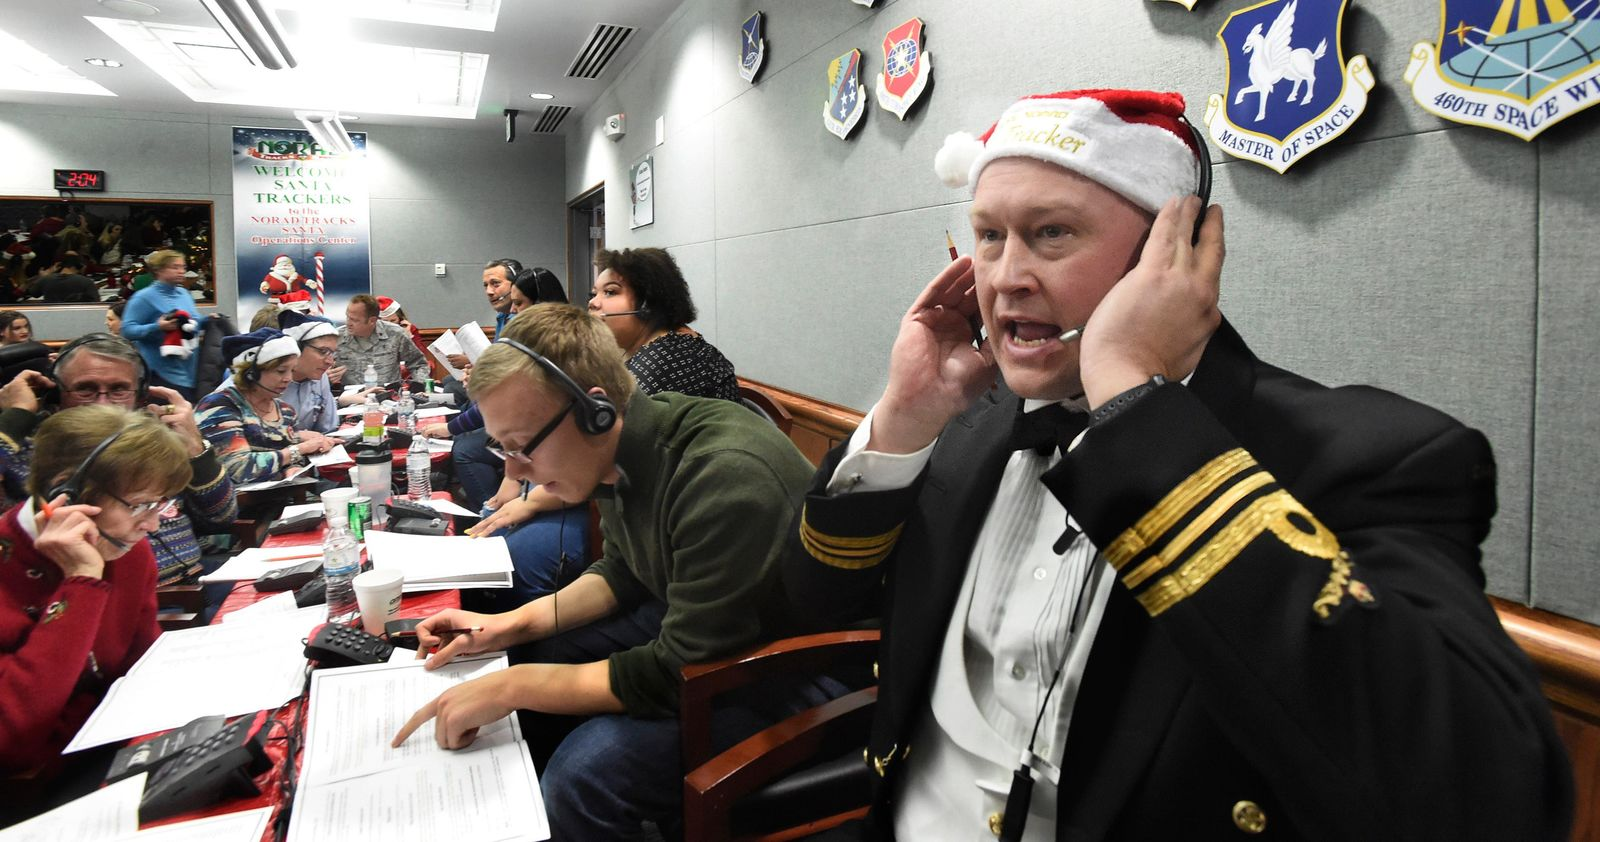 FILE – In this Dec. 24, 2017, file photo, Canadian Lt. Maj. Chris Hache takes a call while volunteering at the NORAD Tracks Santa center at Peterson Air Force Base in Colorado Springs, Colo. Hundreds of volunteers will help answer the phones again when the program resumes on Monday, Dec. 24, 2018, for the 63rd year. Children from around the world call to ask when Santa Claus will get to their house. (Jerilee Bennett/The Gazette via AP, File)